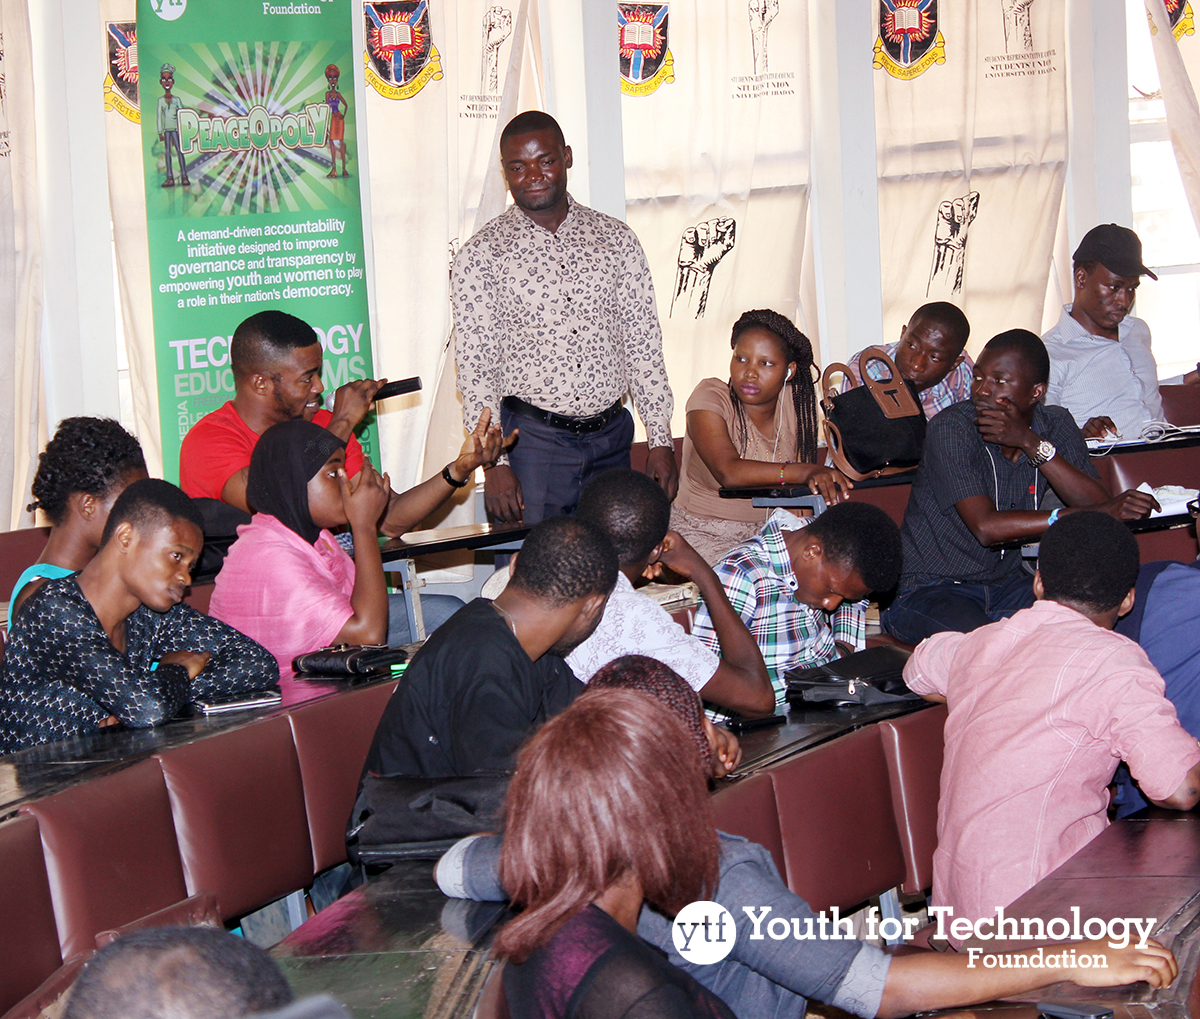 PeaceOpoly workshop session at the University of Ibadan Oyo State on Feb. 3, 2015